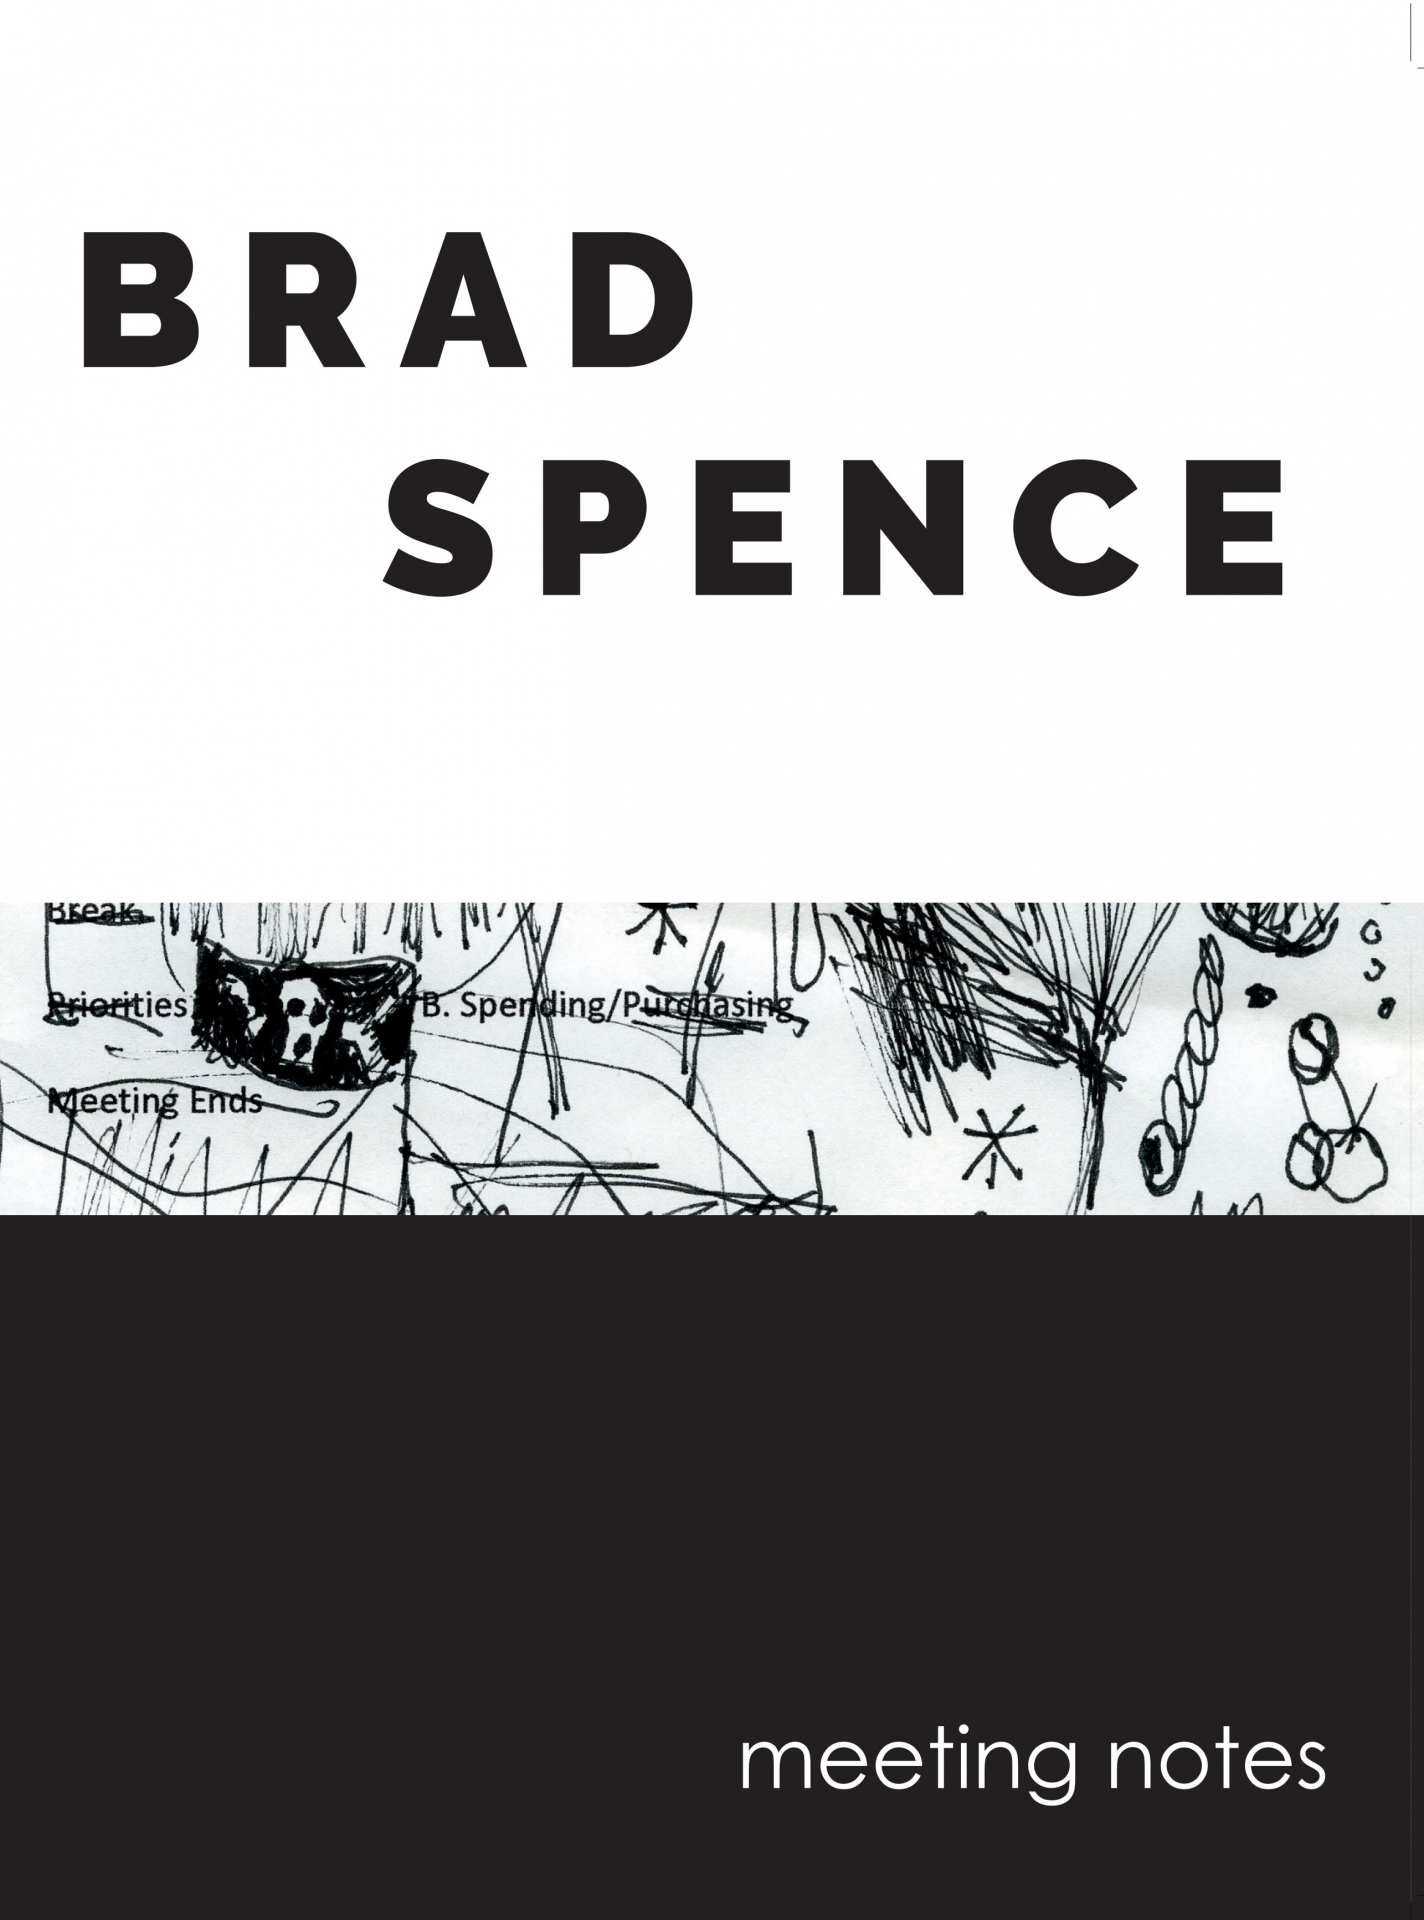 Brad Spence meeting notes